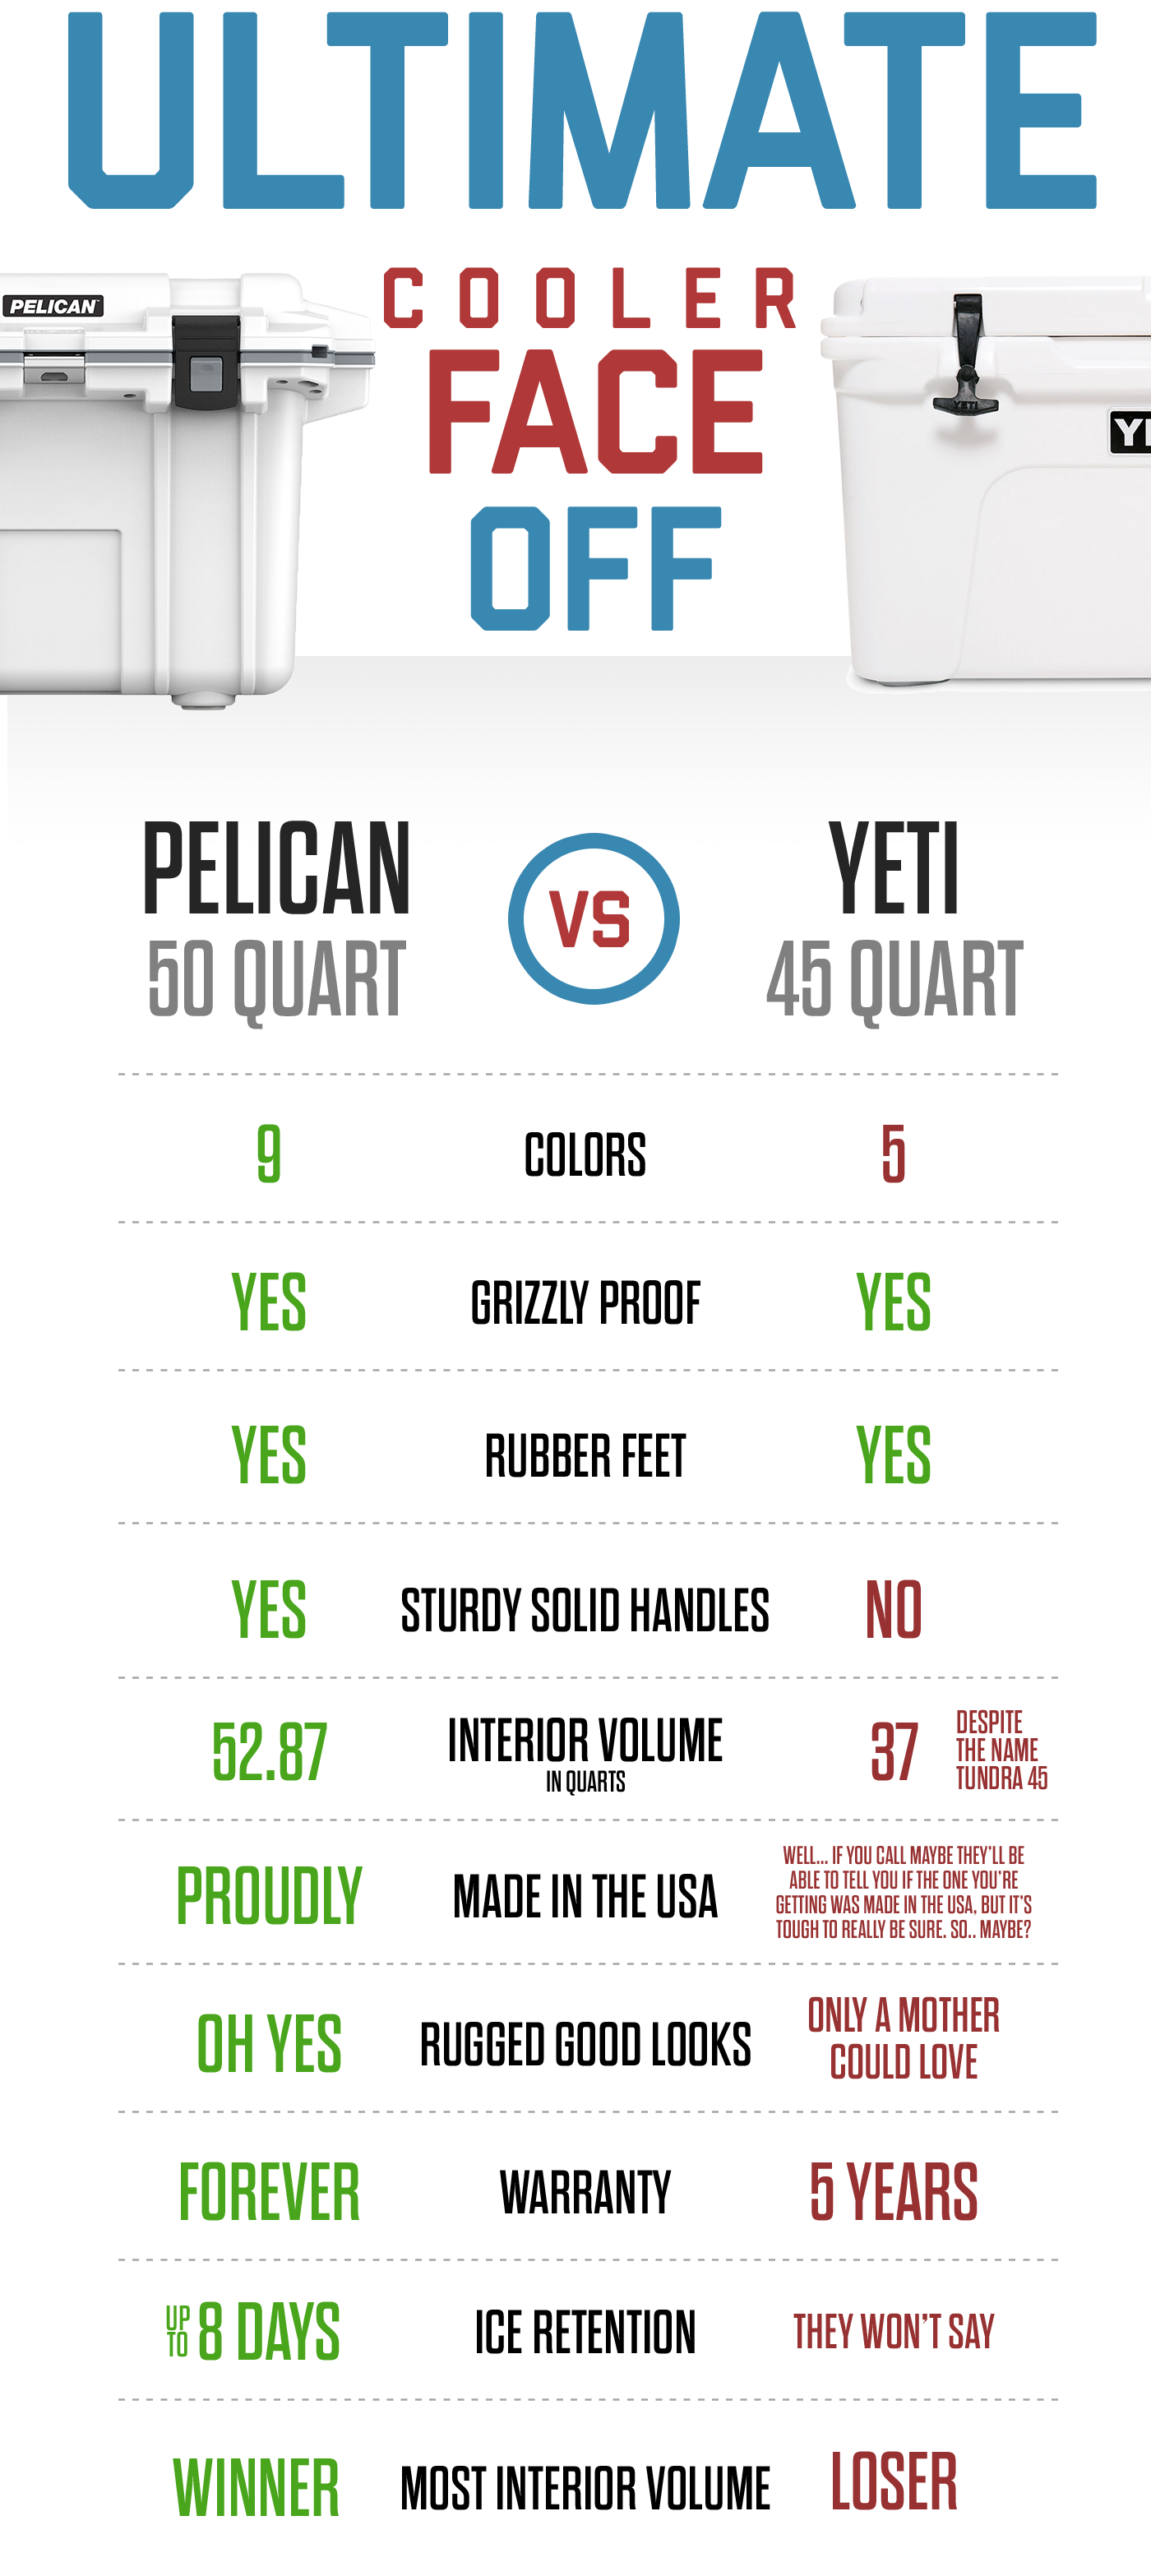 Pelican Coolers vs. Yeti. Which is better?